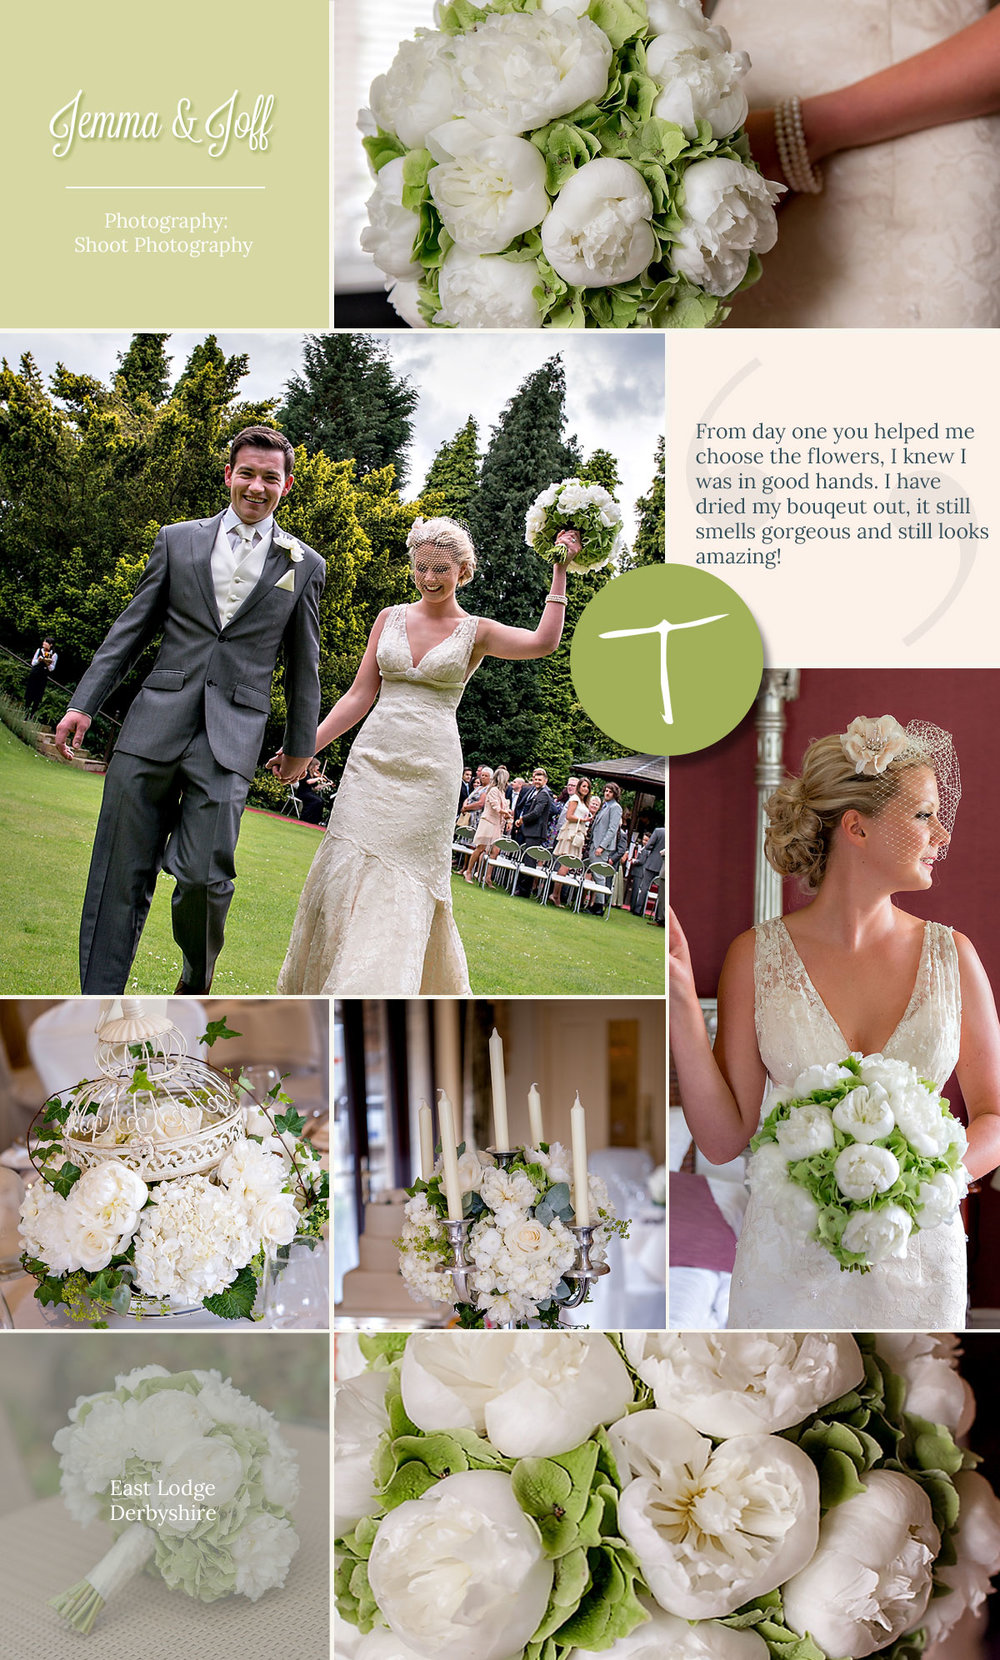 Elegant peonies for a East Lodge wedding created by award winning tineke floral designs in Derbyshire